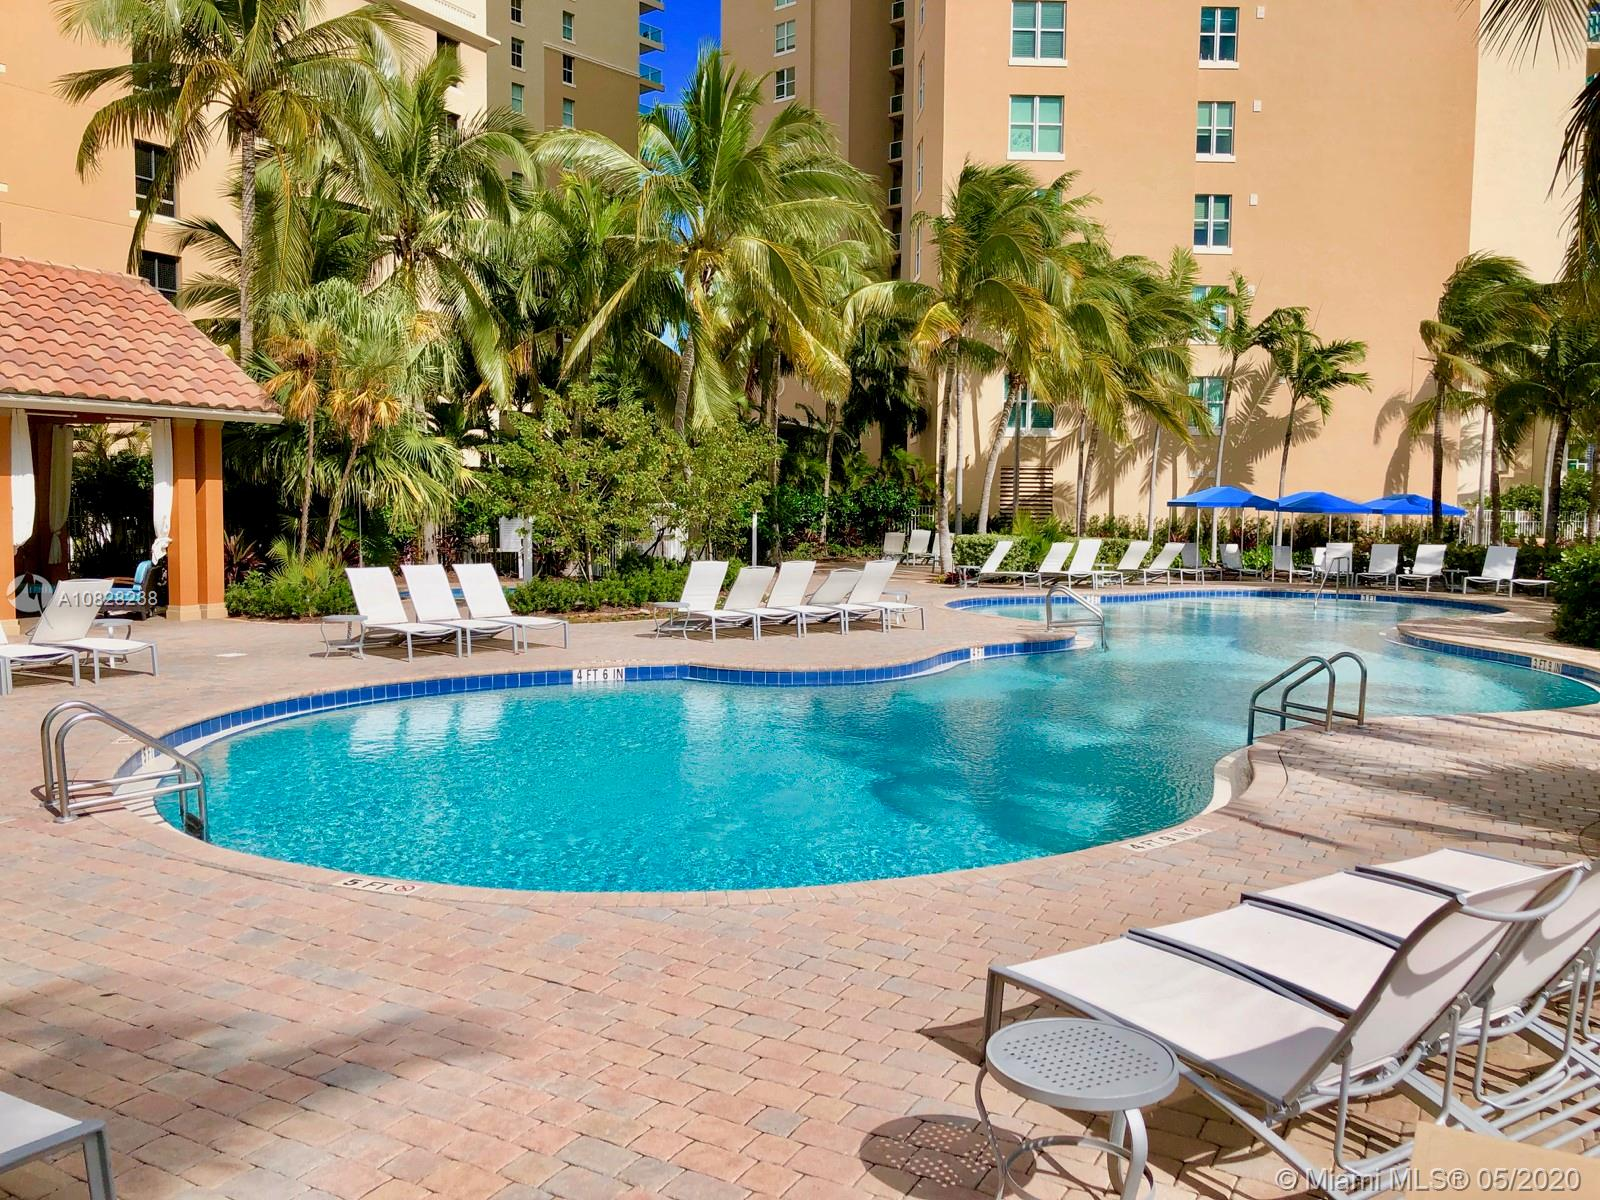 3340 NE 190th St # 208, Aventura, Florida 33180, 3 Bedrooms Bedrooms, ,3 BathroomsBathrooms,Residential,For Sale,3340 NE 190th St # 208,A10828238